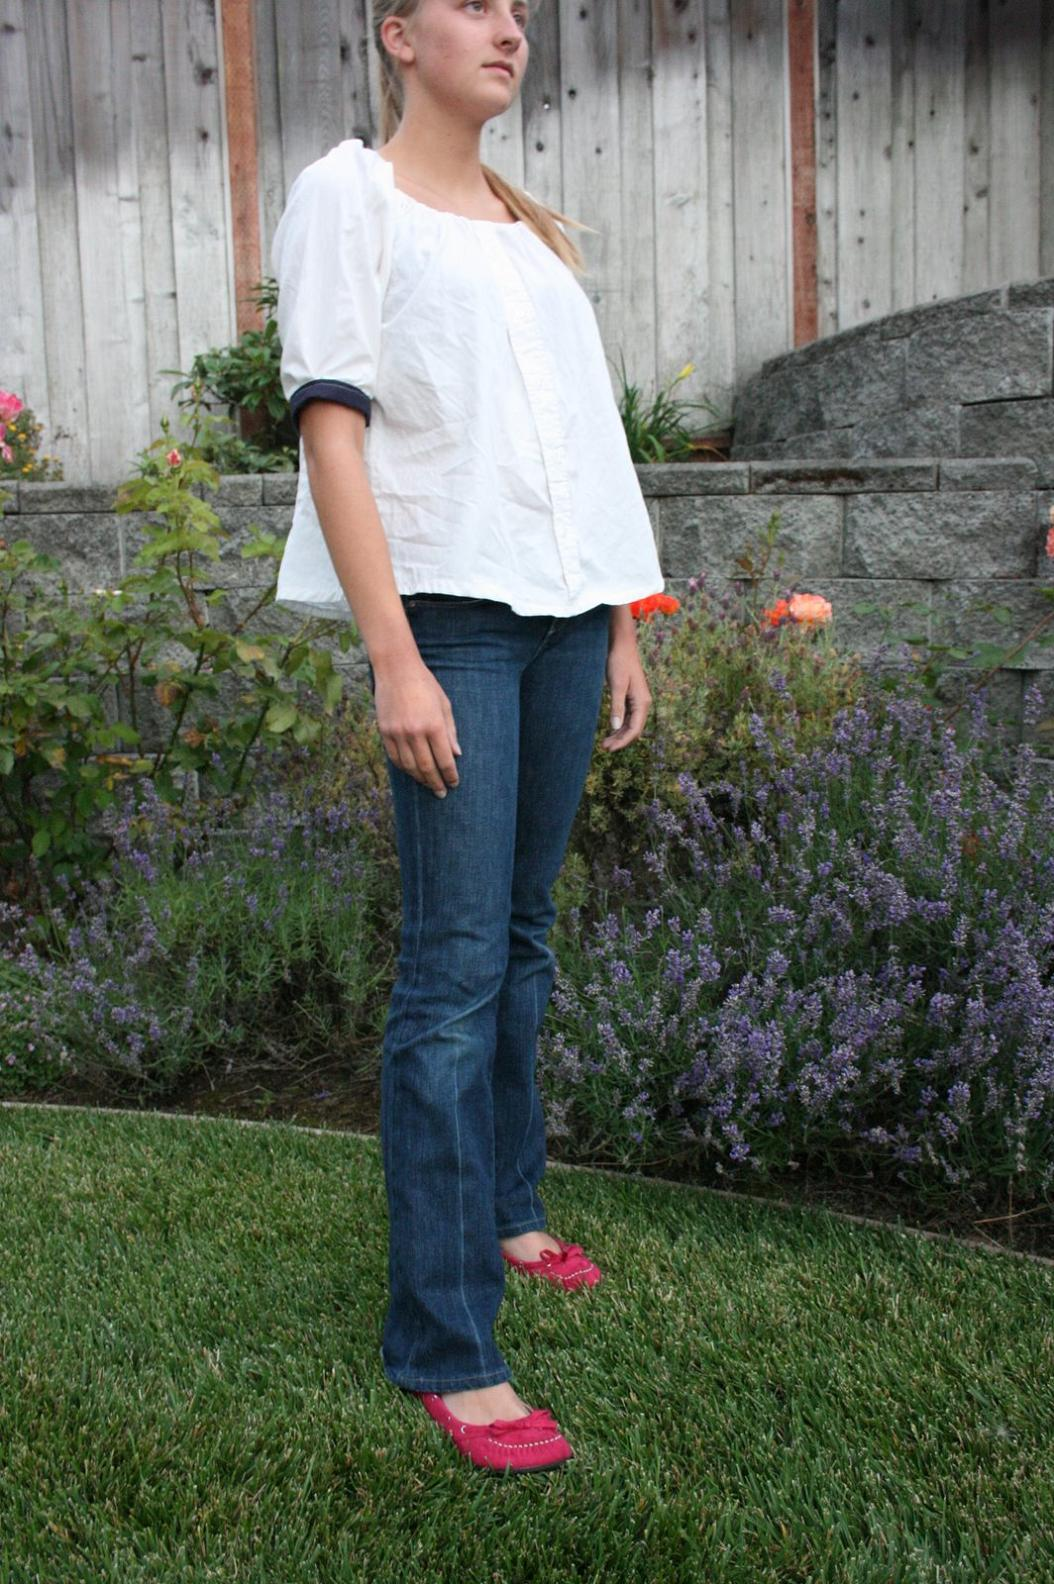 30 Creative and Cool Ways to Reuse Old Shirts